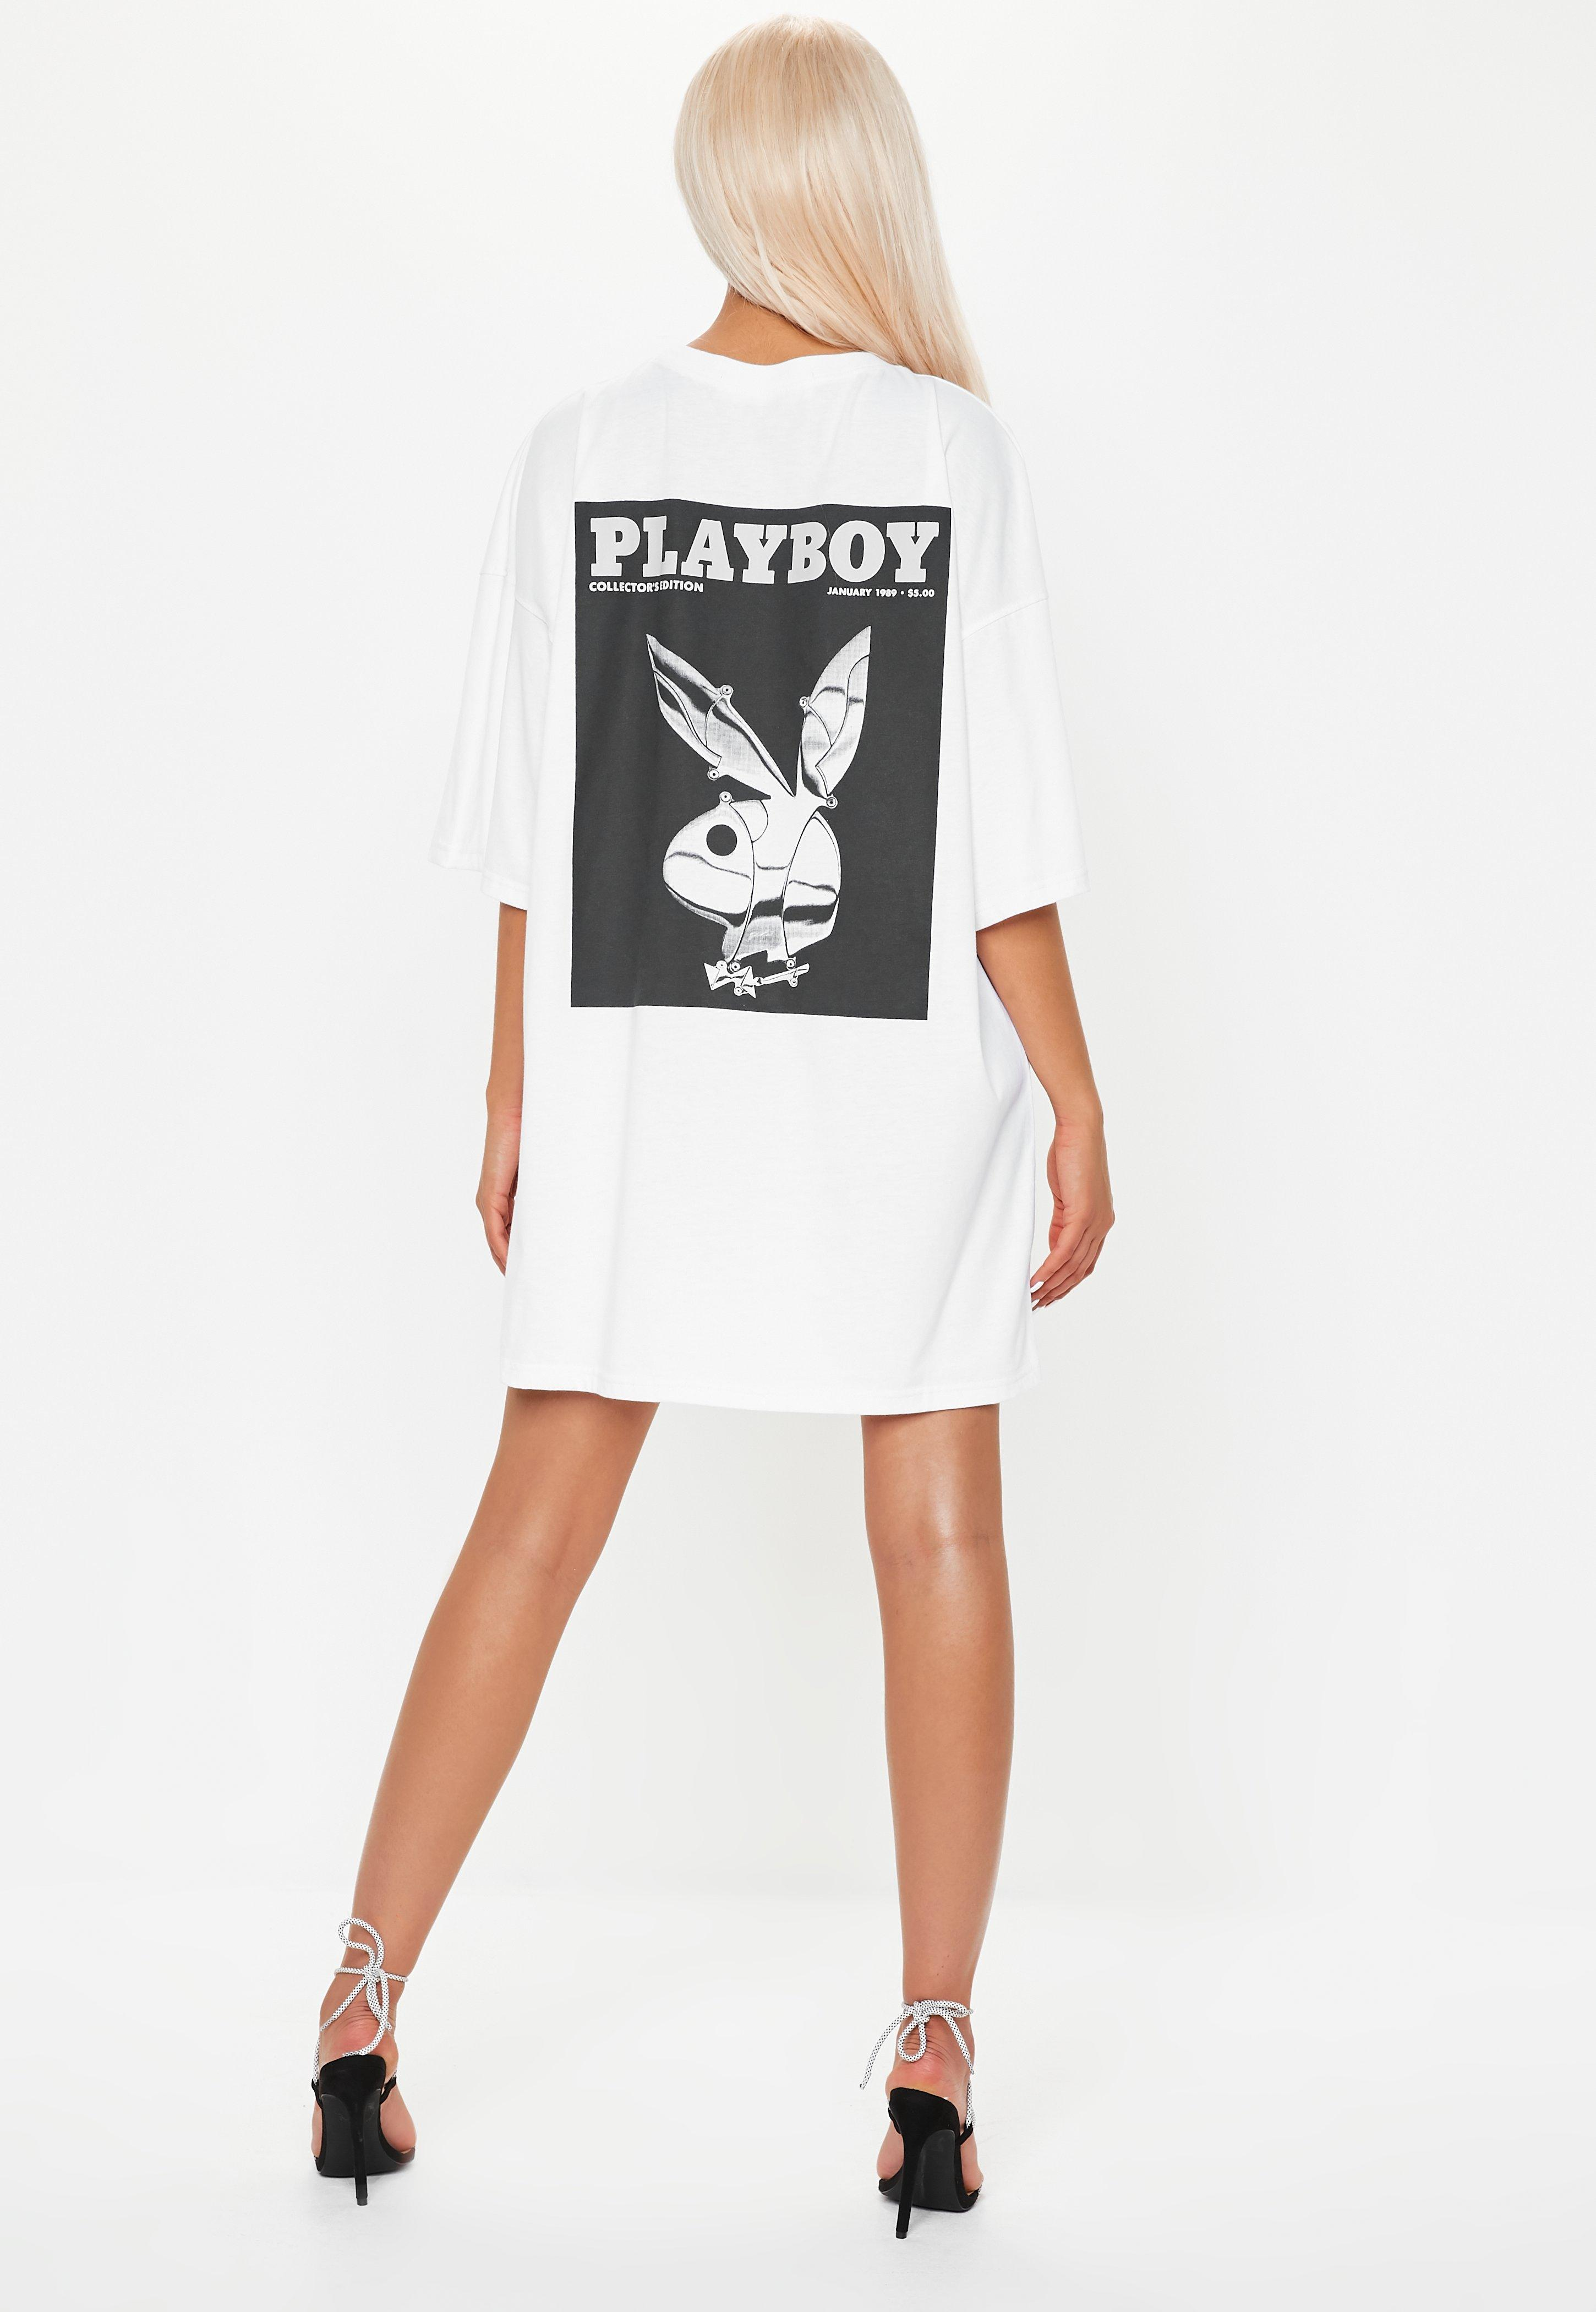 a2fa849b Playboy Clothing | Playboy T-Shirts, Necklaces & Tracksuits – Missguided